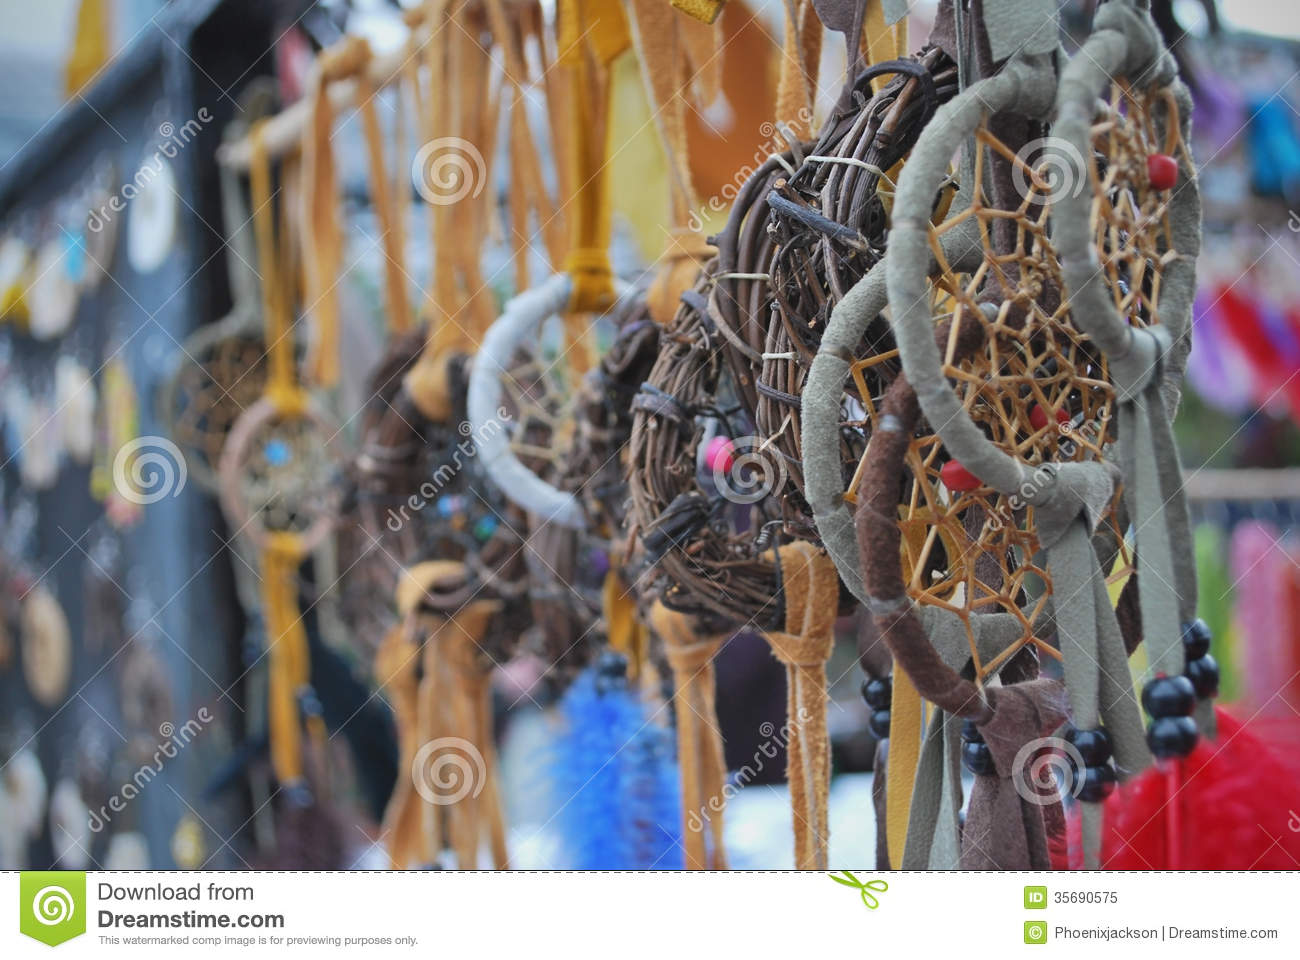 Native crafts and art beautiful dreamcatchers in market for Native arts and crafts